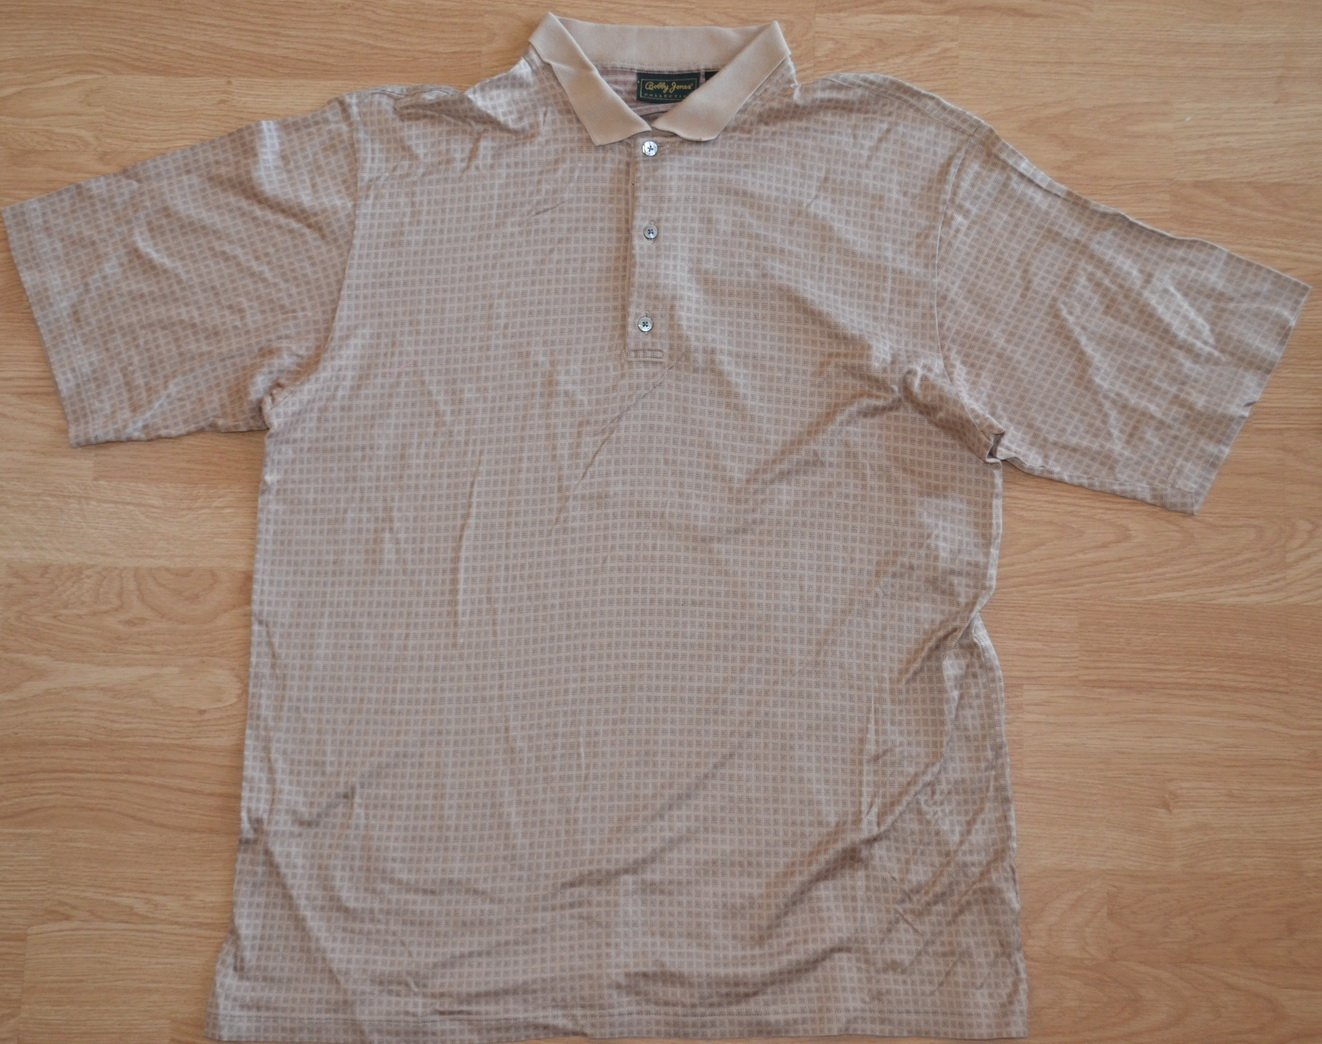 N973 Mens Polo shirt BOBBY JONES Size L Made in Italy